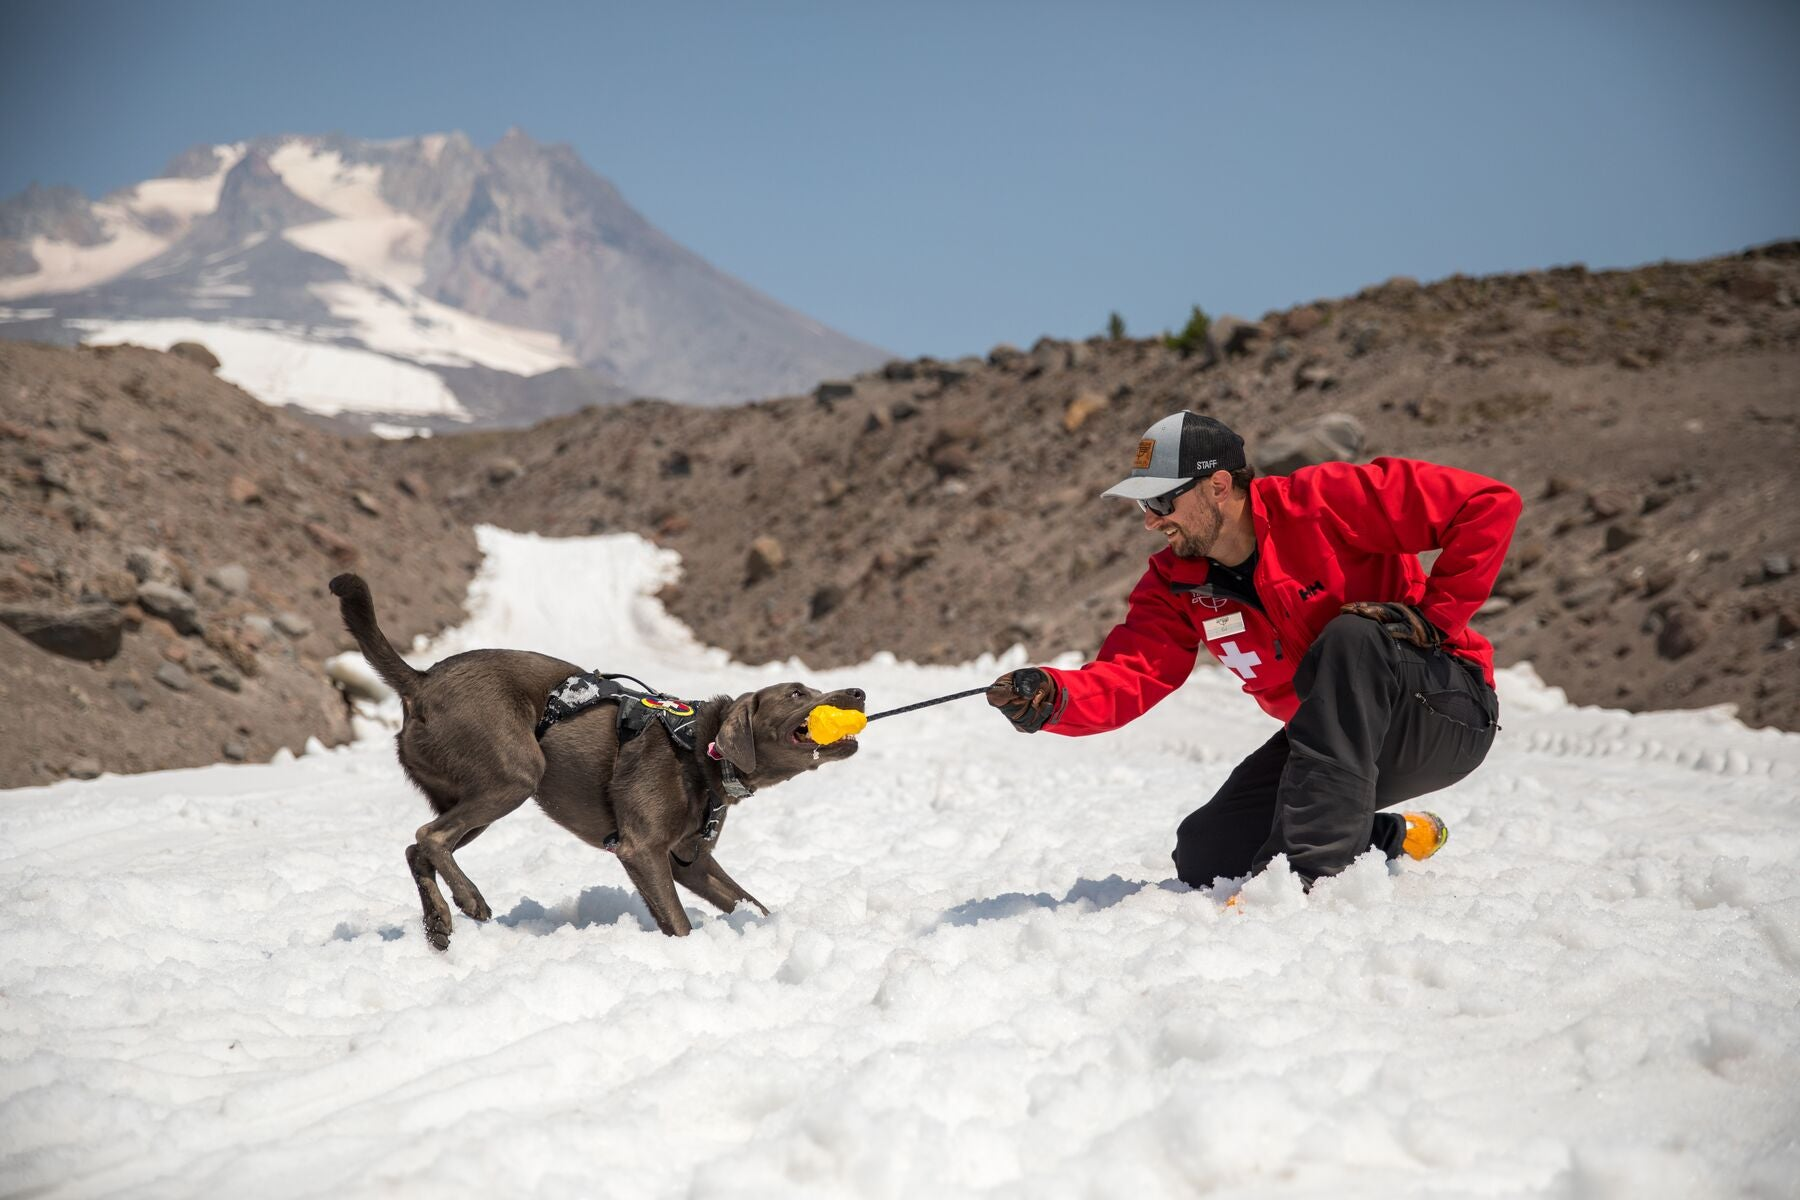 Patroller and dog play tug of war with huck a cone on Mt hood.